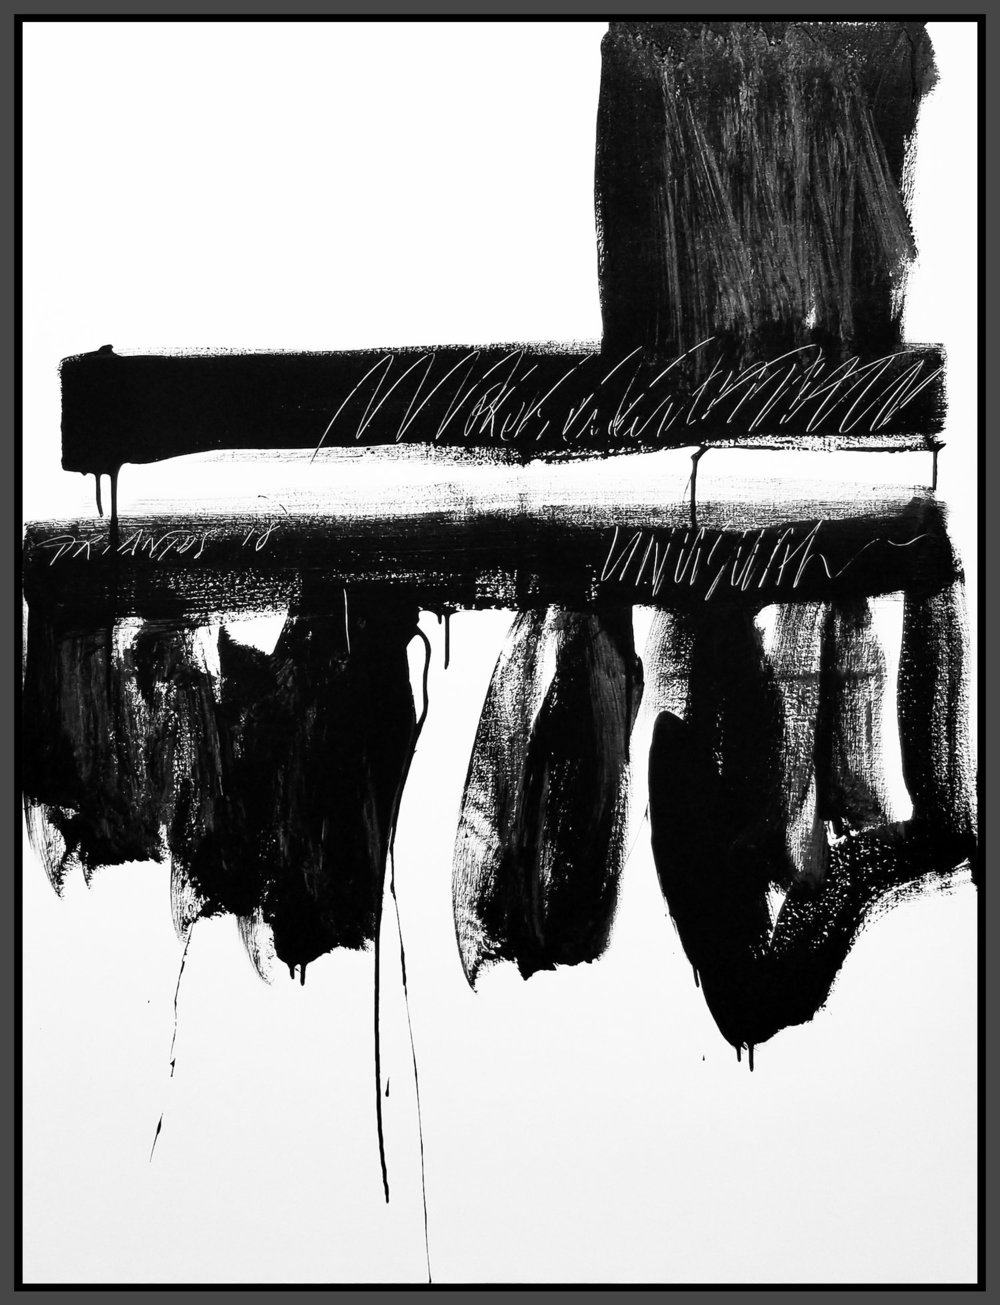 """Black and White #63, 2018, acrylic on canvas, 48"""" x 36"""" (122 x 91.4 cm)"""